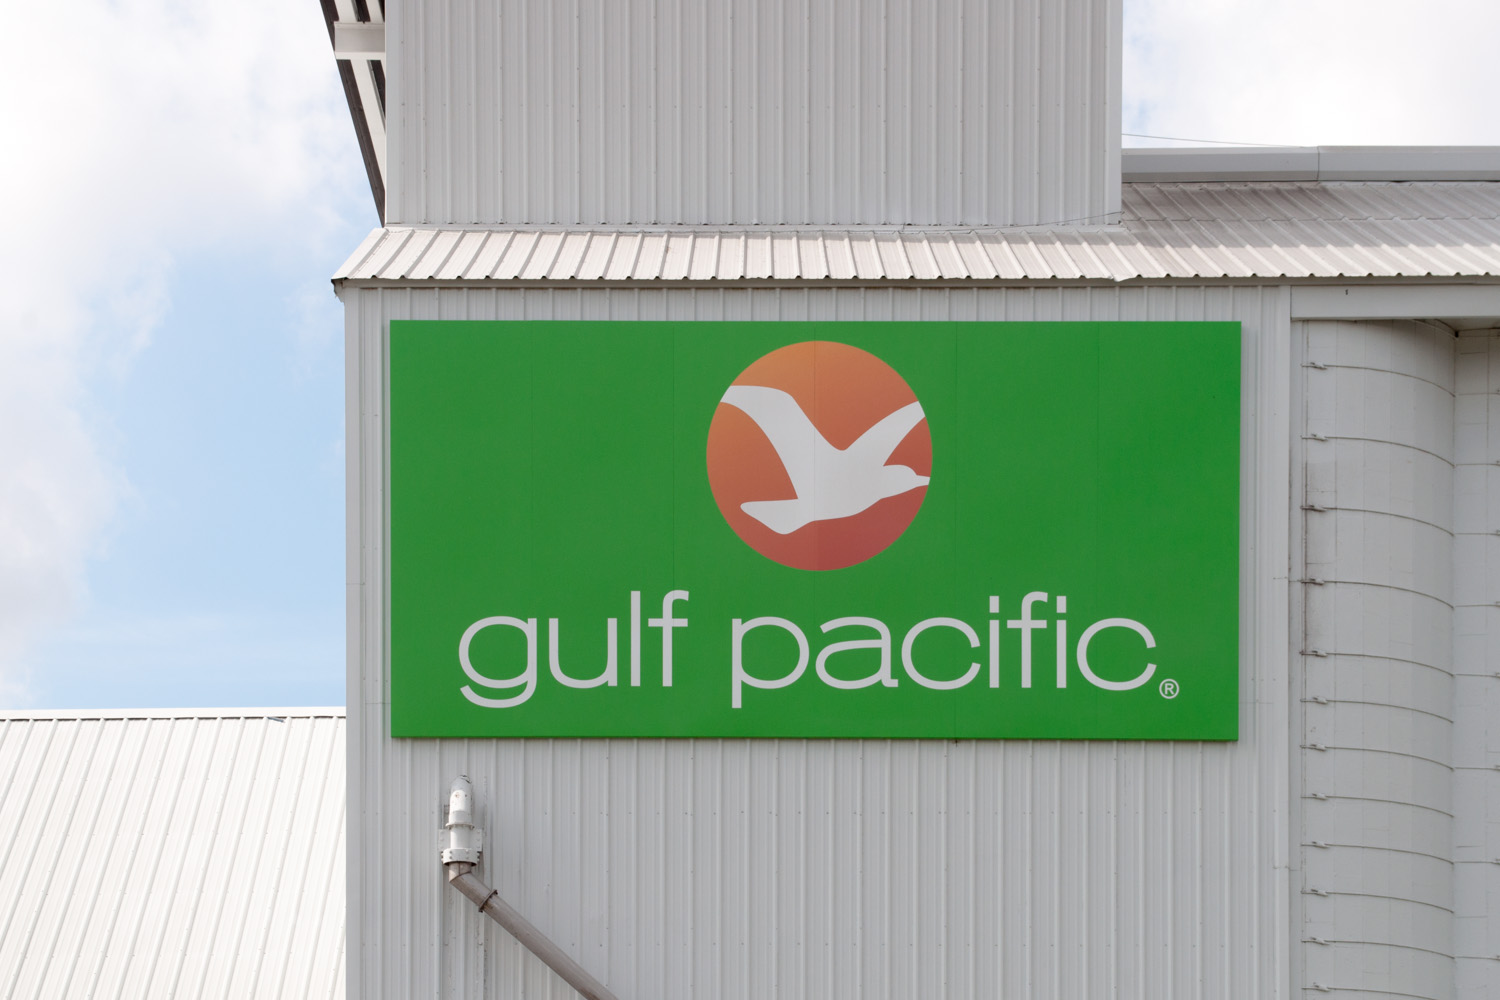 Featured_PanSign_Gulfpacific_closeup.jpg